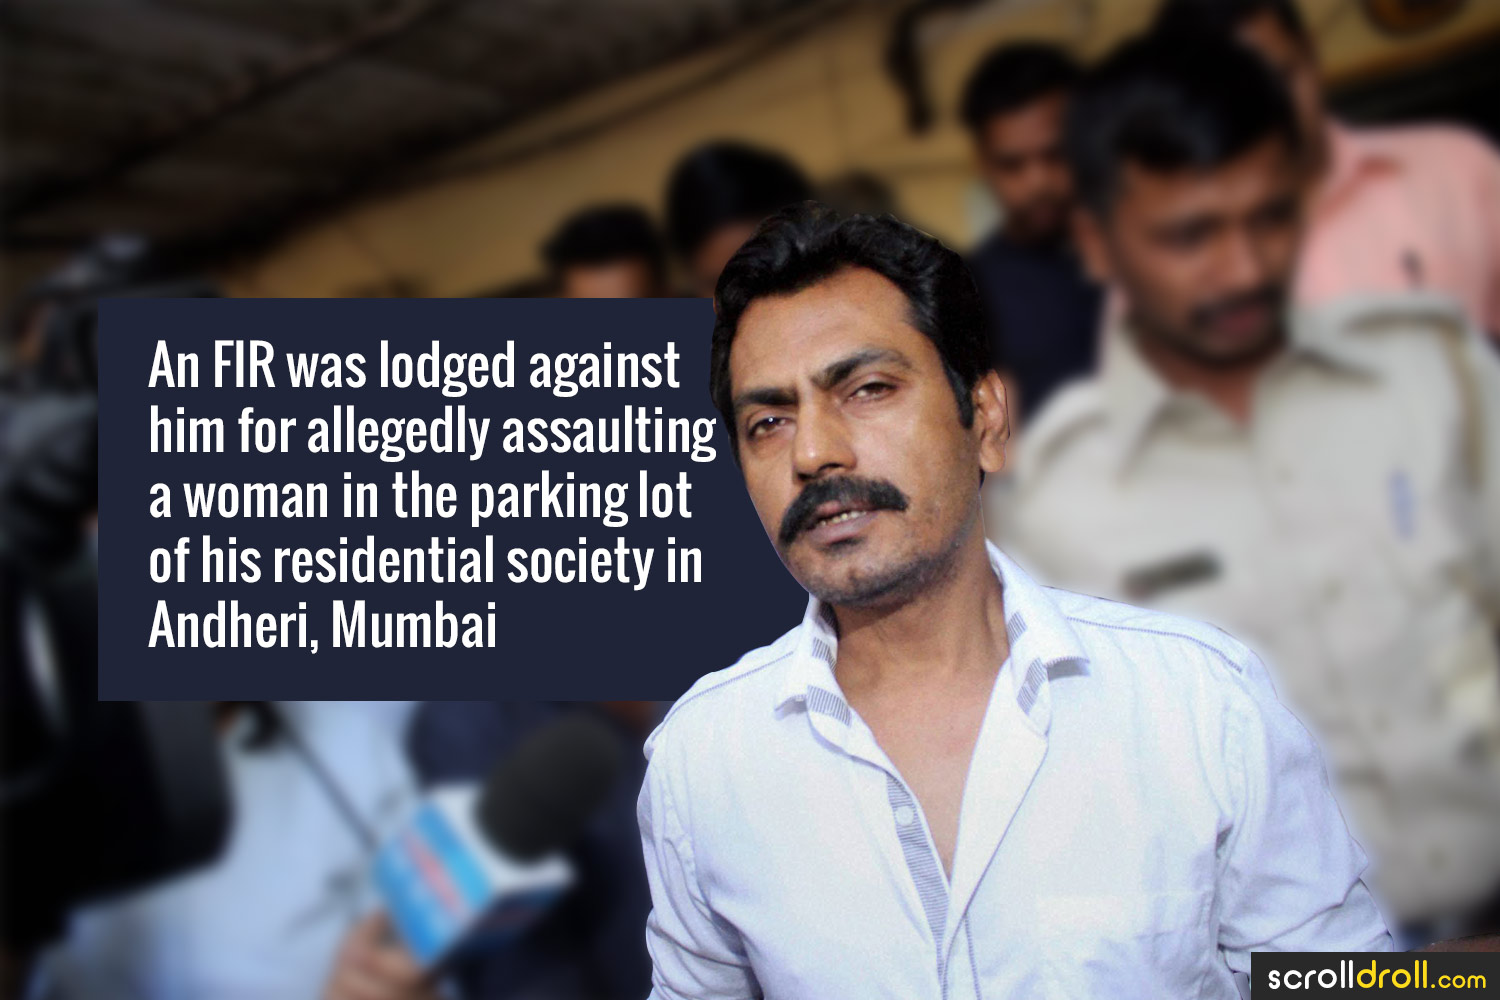 Facts about Nawazuddin Siddique-An Fir was lodged against him for allegedly assaulting a woman in the parking lot of his residential society in Andheri,Mumbai